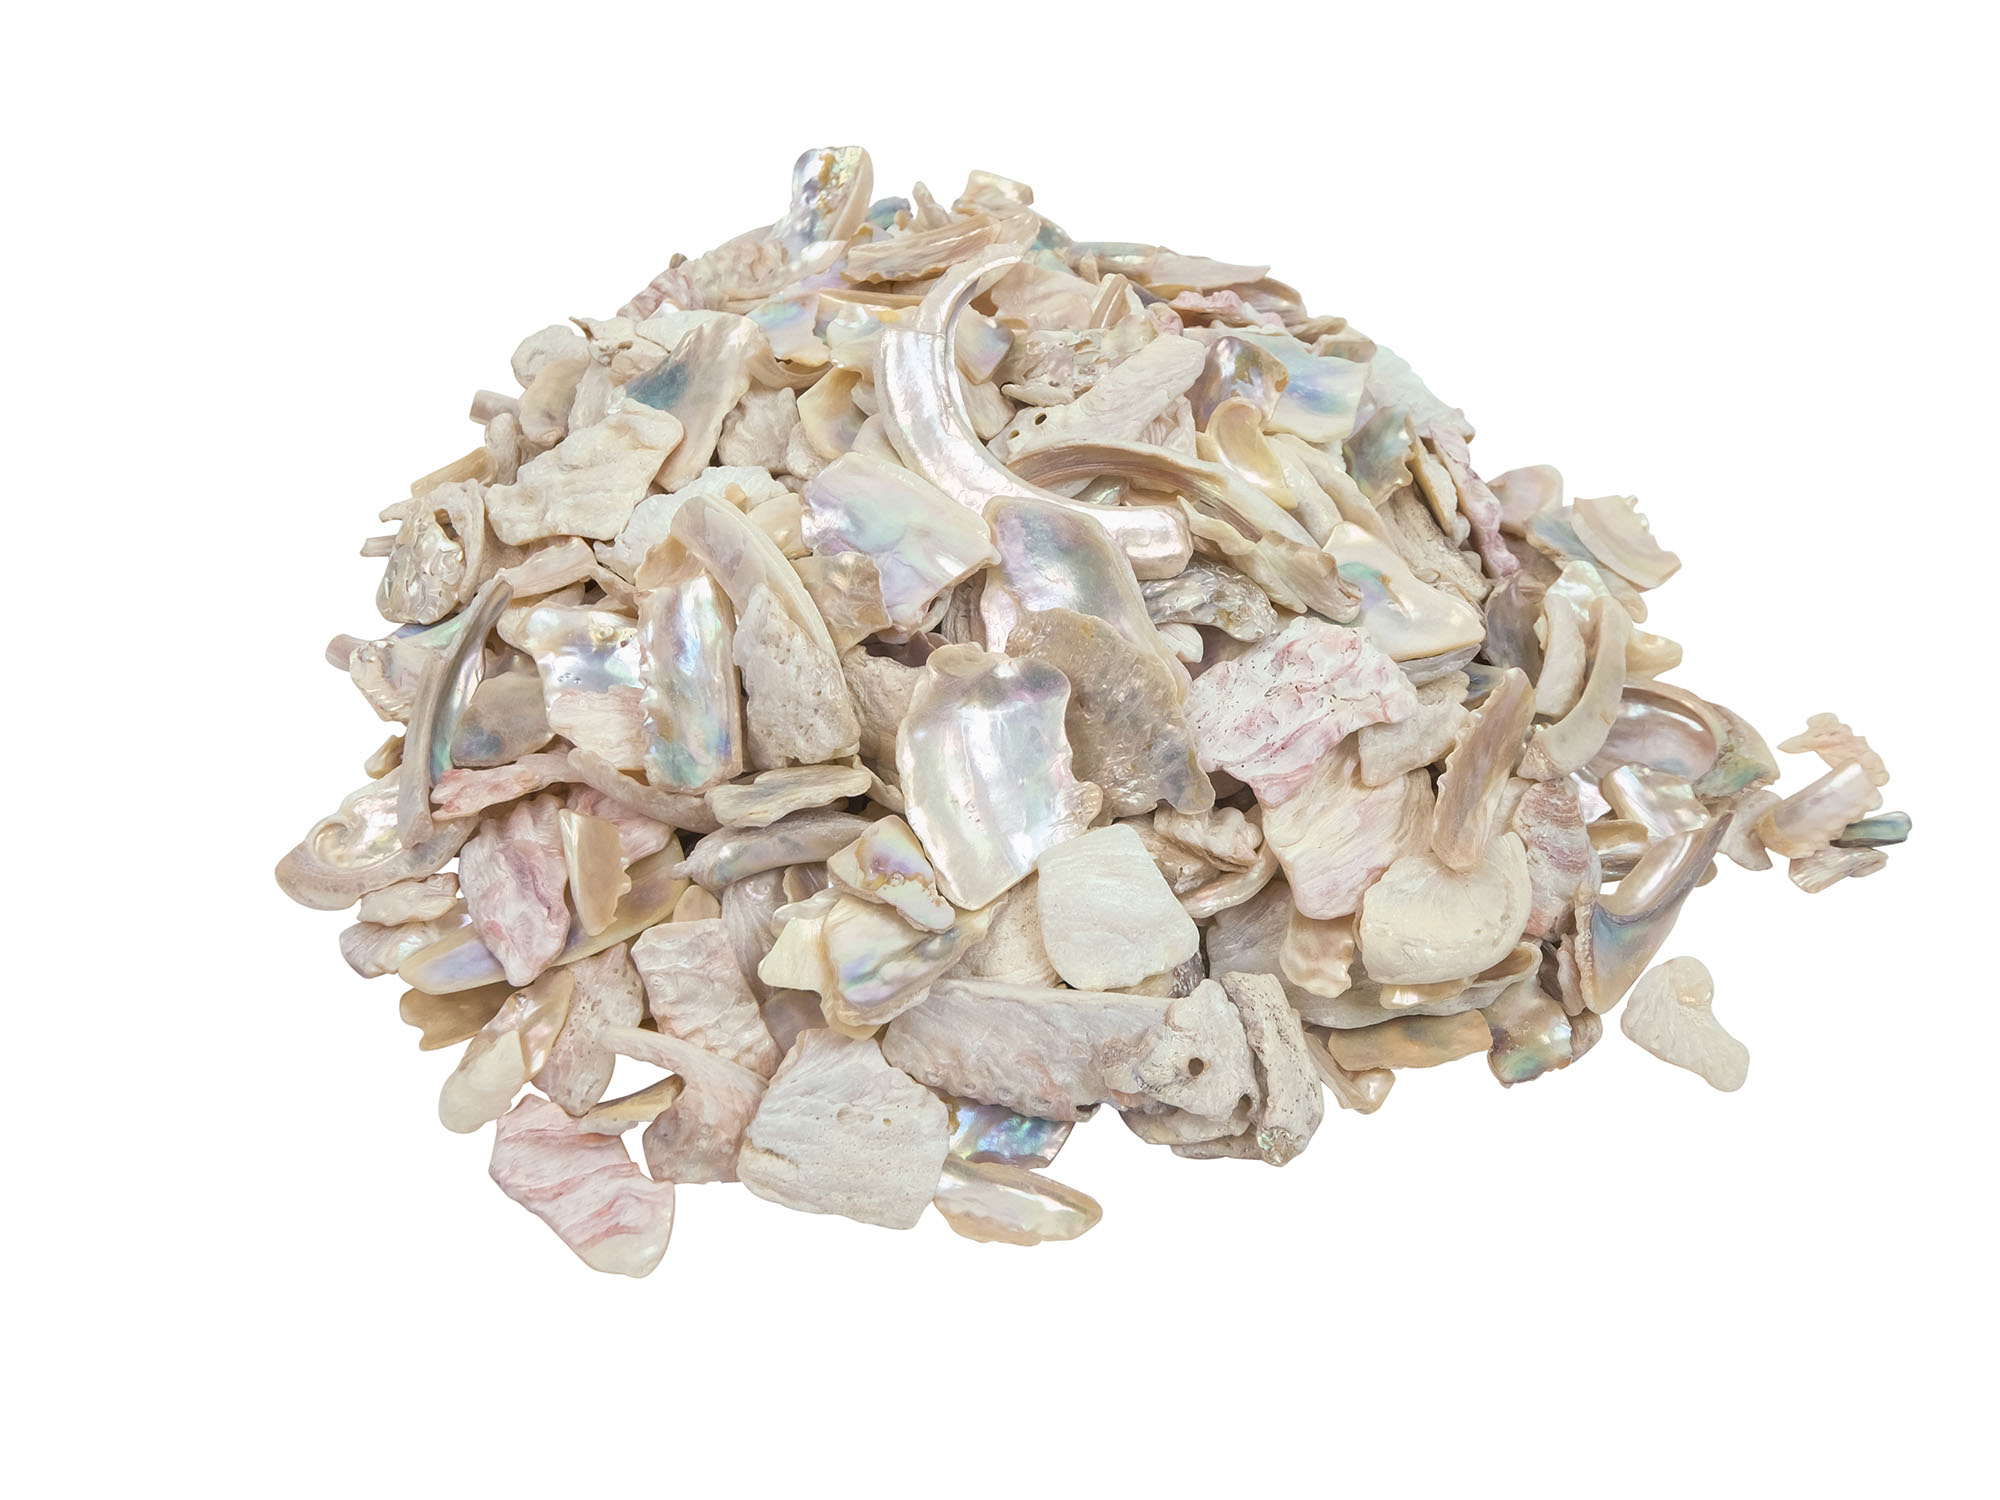 1-kg bag 220-TP-10-BW Bleached White African Abalone Shell Pieces: 10mm size 10UB 2.2 pounds